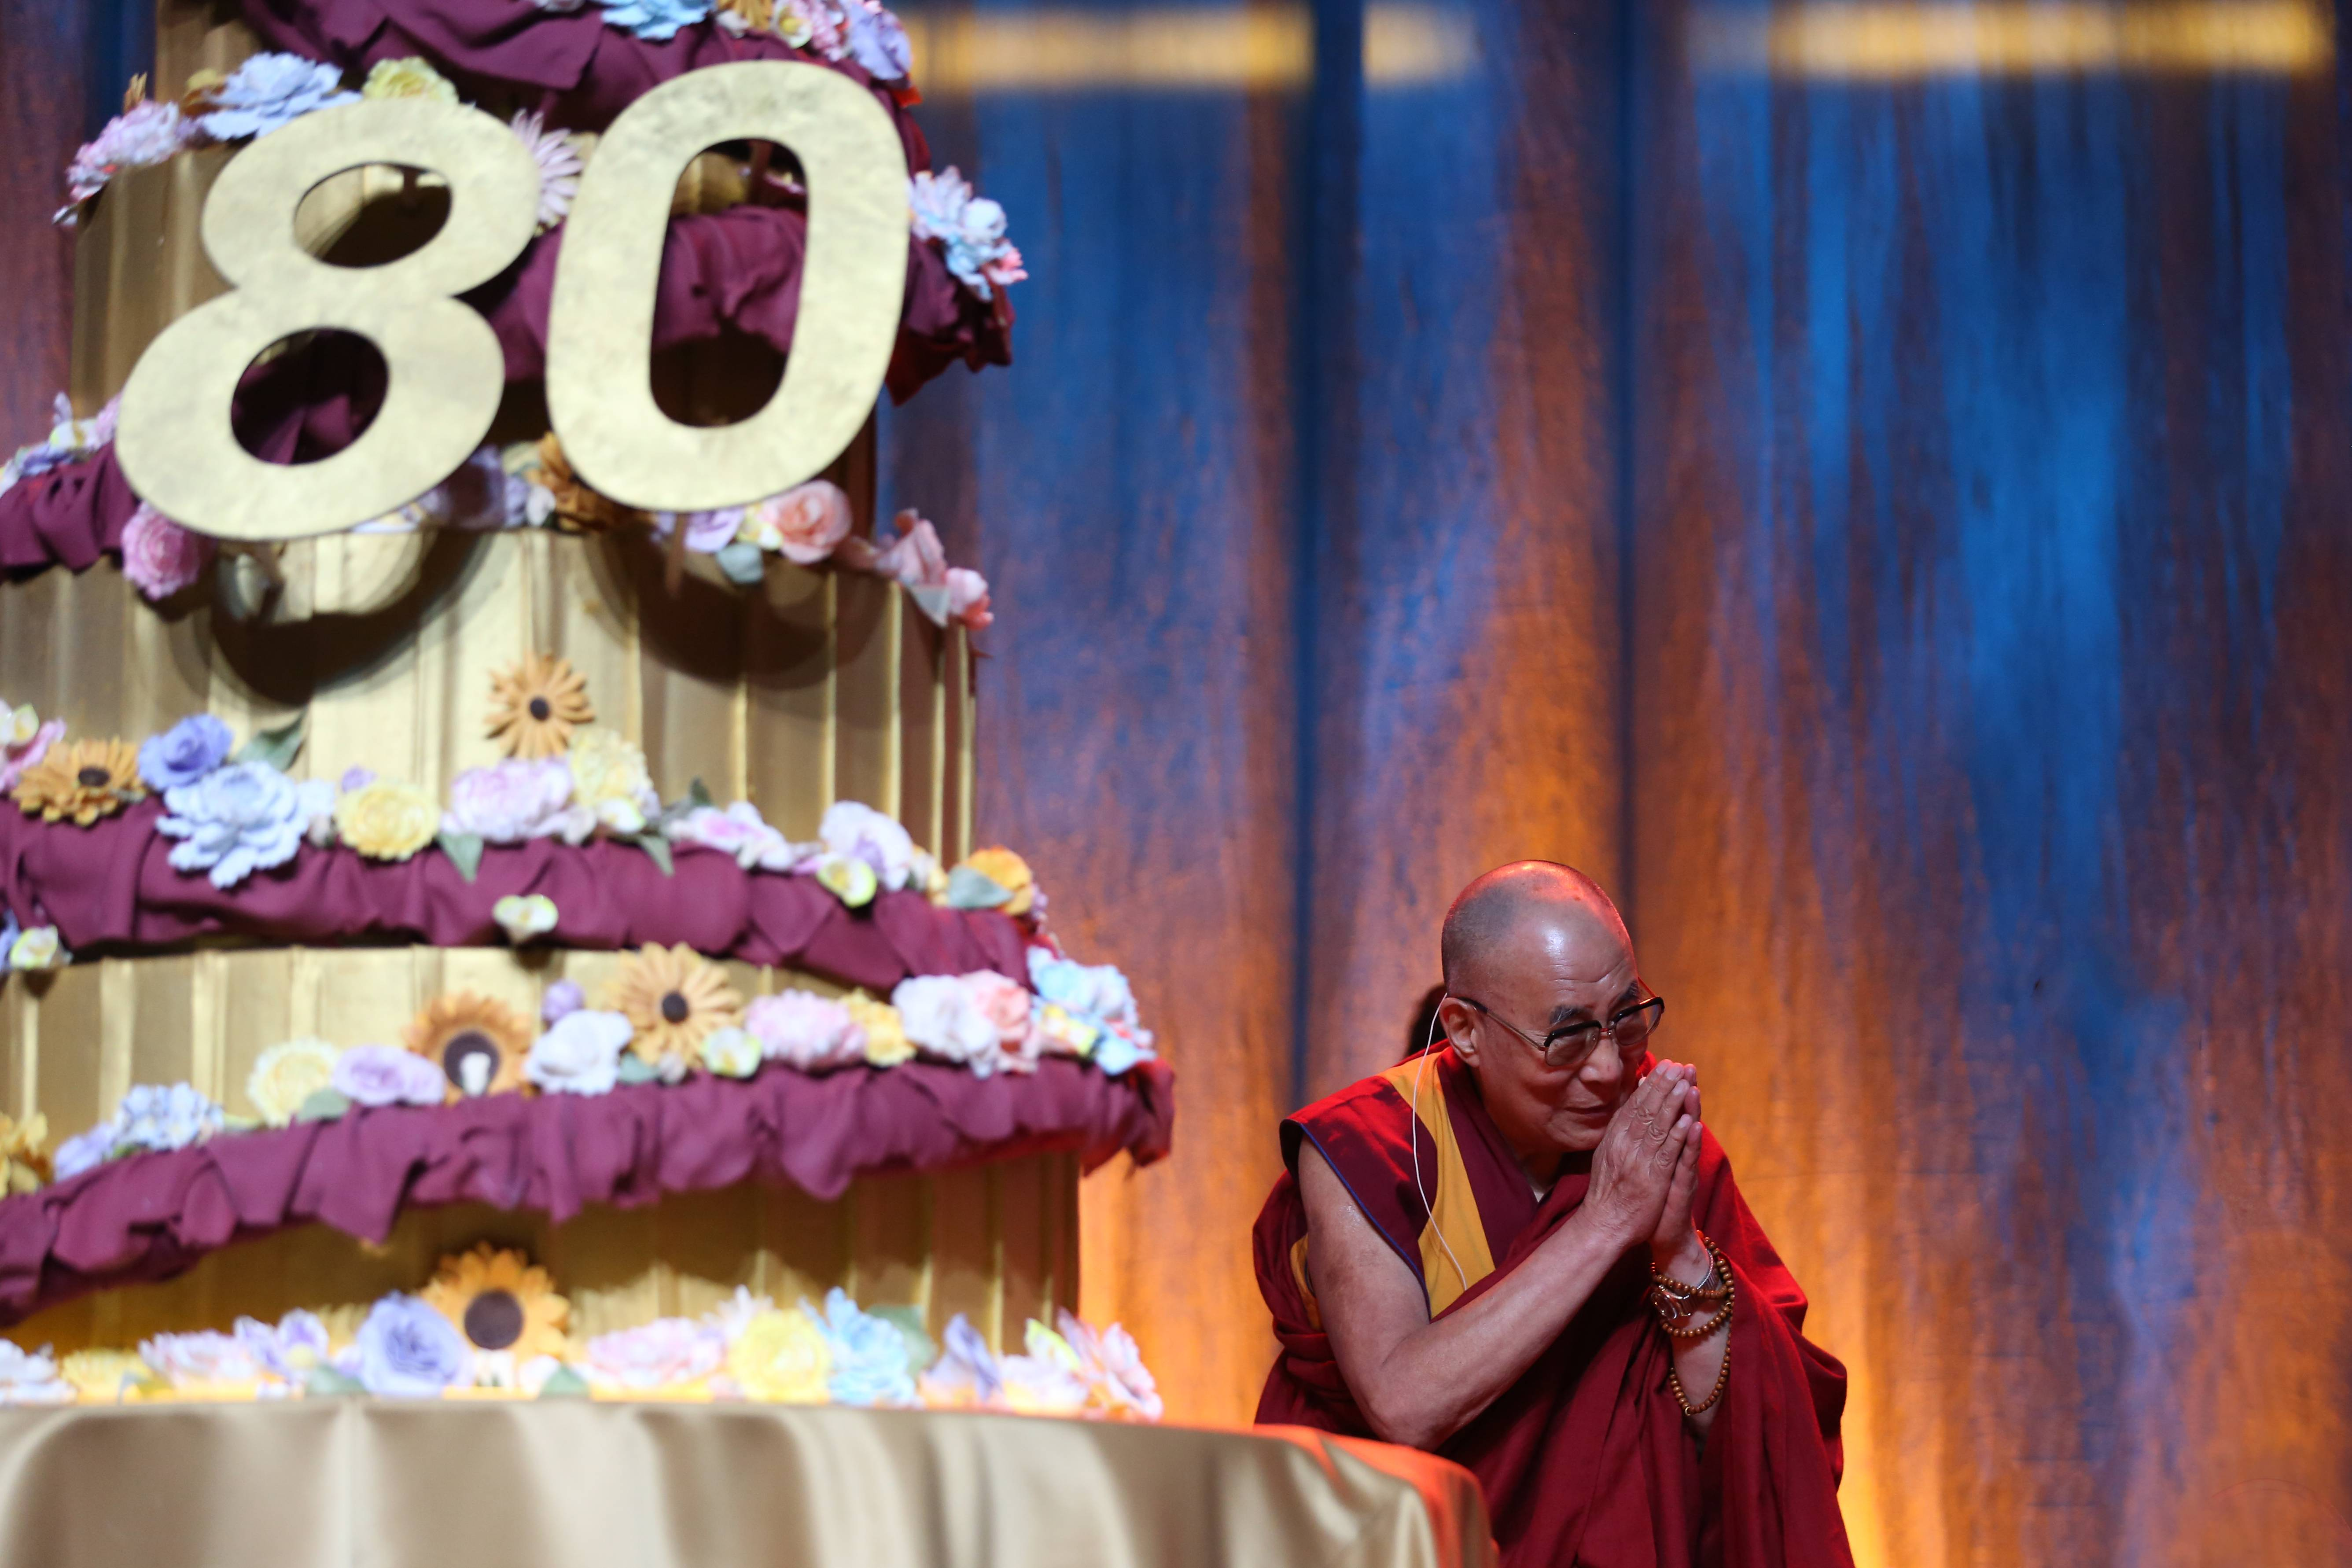 His Holiness The 14th Dalai Lama Posing With Birthday Cake From Art Institute Of